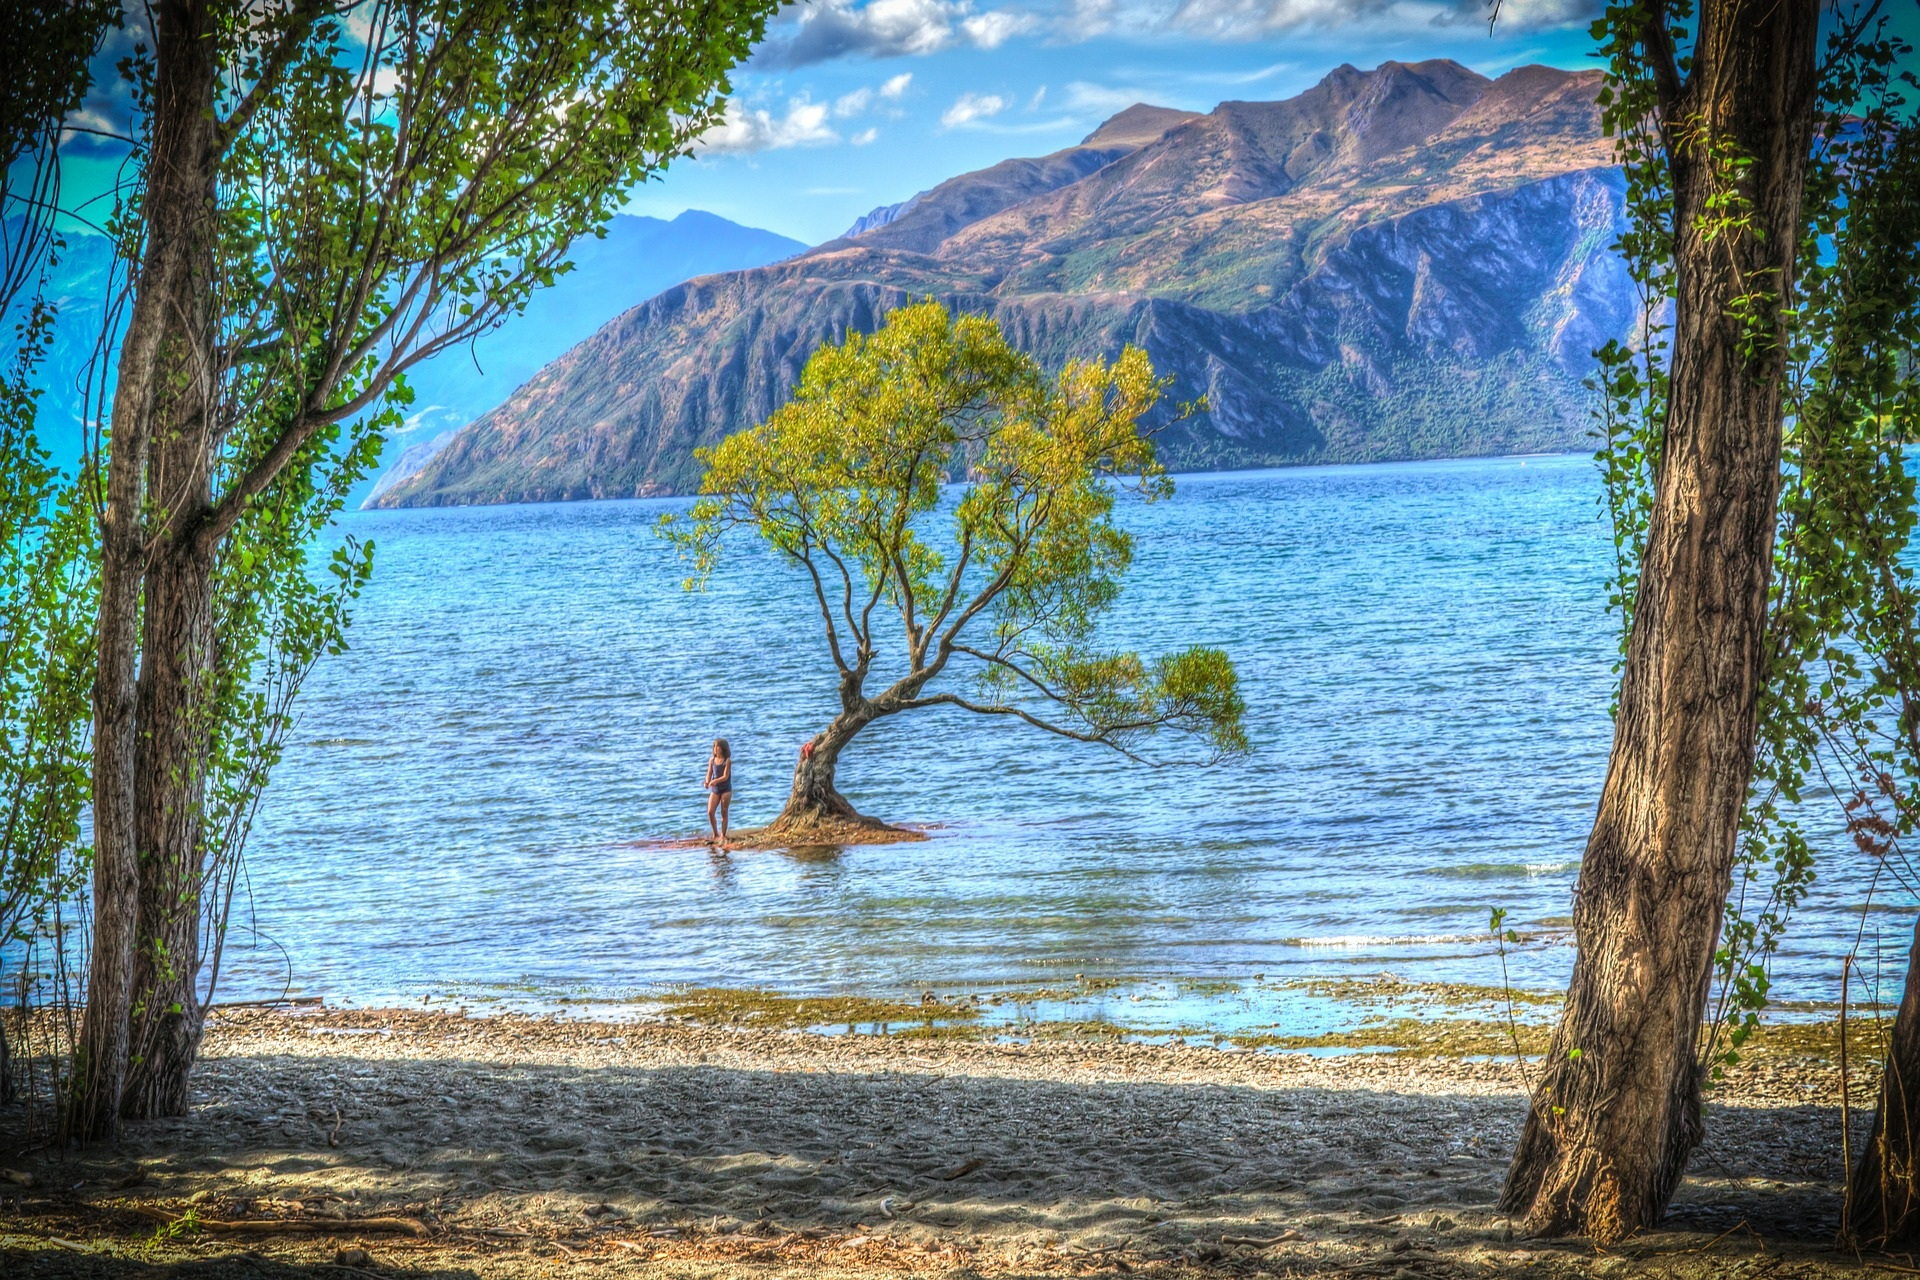 Experience Wanaka Tour - From $249 per person